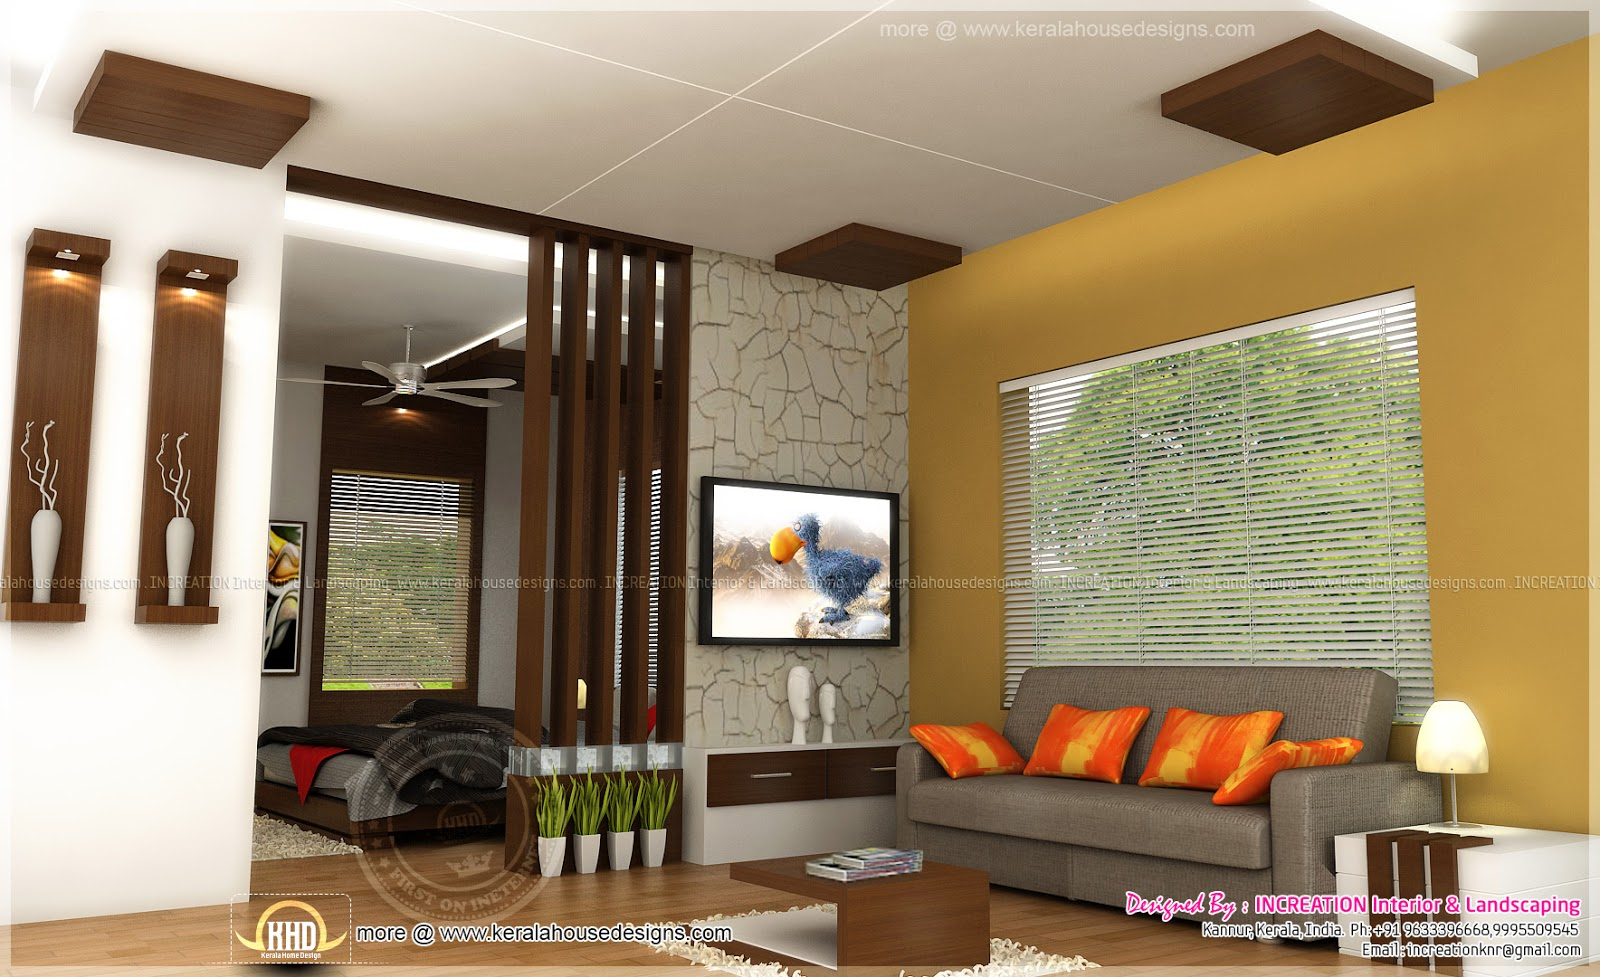 Interior designs from kannur kerala home kerala plans for Simple drawing room interior design